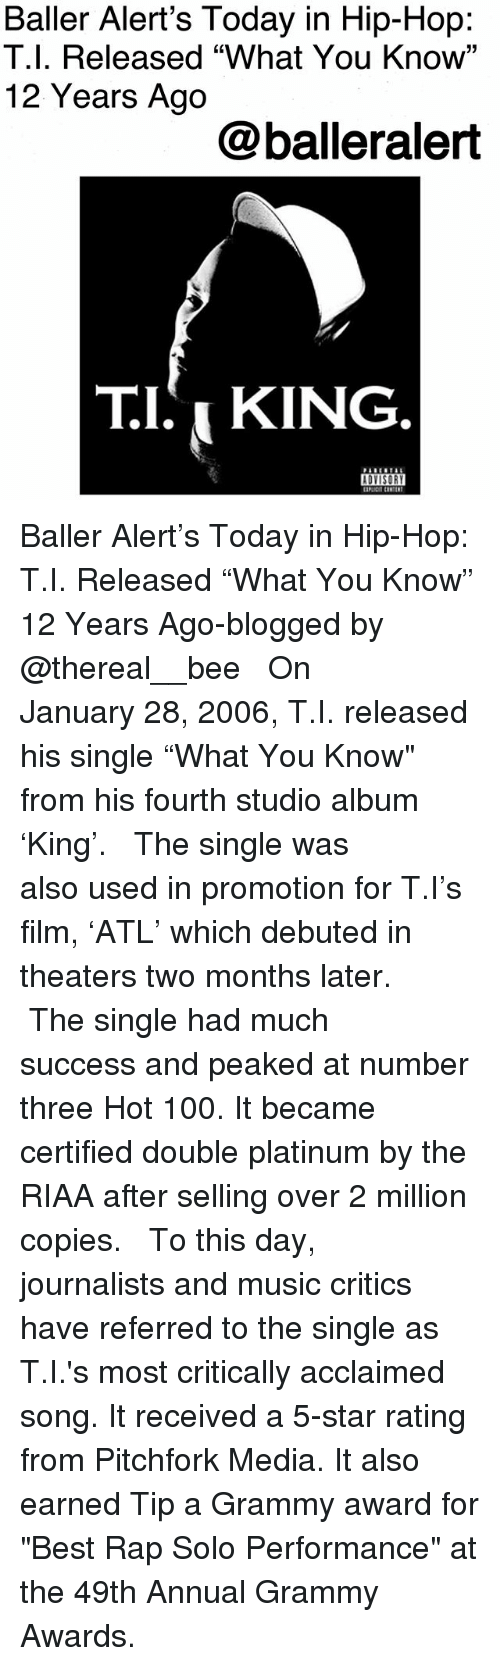 """Anaconda, Baller Alert, and Grammy Awards: Baller Alert's Today in Hip-Hop:  T.l. Released """"What You Know'""""  12 Years Ago  @balleralert  T.I. i KING Baller Alert's Today in Hip-Hop: T.I. Released """"What You Know"""" 12 Years Ago-blogged by @thereal__bee ⠀⠀⠀⠀⠀⠀⠀ ⠀⠀⠀⠀ On January 28, 2006, T.I. released his single """"What You Know"""" from his fourth studio album 'King'. ⠀⠀⠀⠀⠀⠀⠀ ⠀⠀⠀⠀ The single was also used in promotion for T.I's film, 'ATL' which debuted in theaters two months later. ⠀⠀⠀⠀⠀⠀⠀ ⠀⠀⠀⠀ The single had much success and peaked at number three Hot 100. It became certified double platinum by the RIAA after selling over 2 million copies. ⠀⠀⠀⠀⠀⠀⠀ ⠀⠀⠀⠀ To this day, journalists and music critics have referred to the single as T.I.'s most critically acclaimed song. It received a 5-star rating from Pitchfork Media. It also earned Tip a Grammy award for """"Best Rap Solo Performance"""" at the 49th Annual Grammy Awards."""